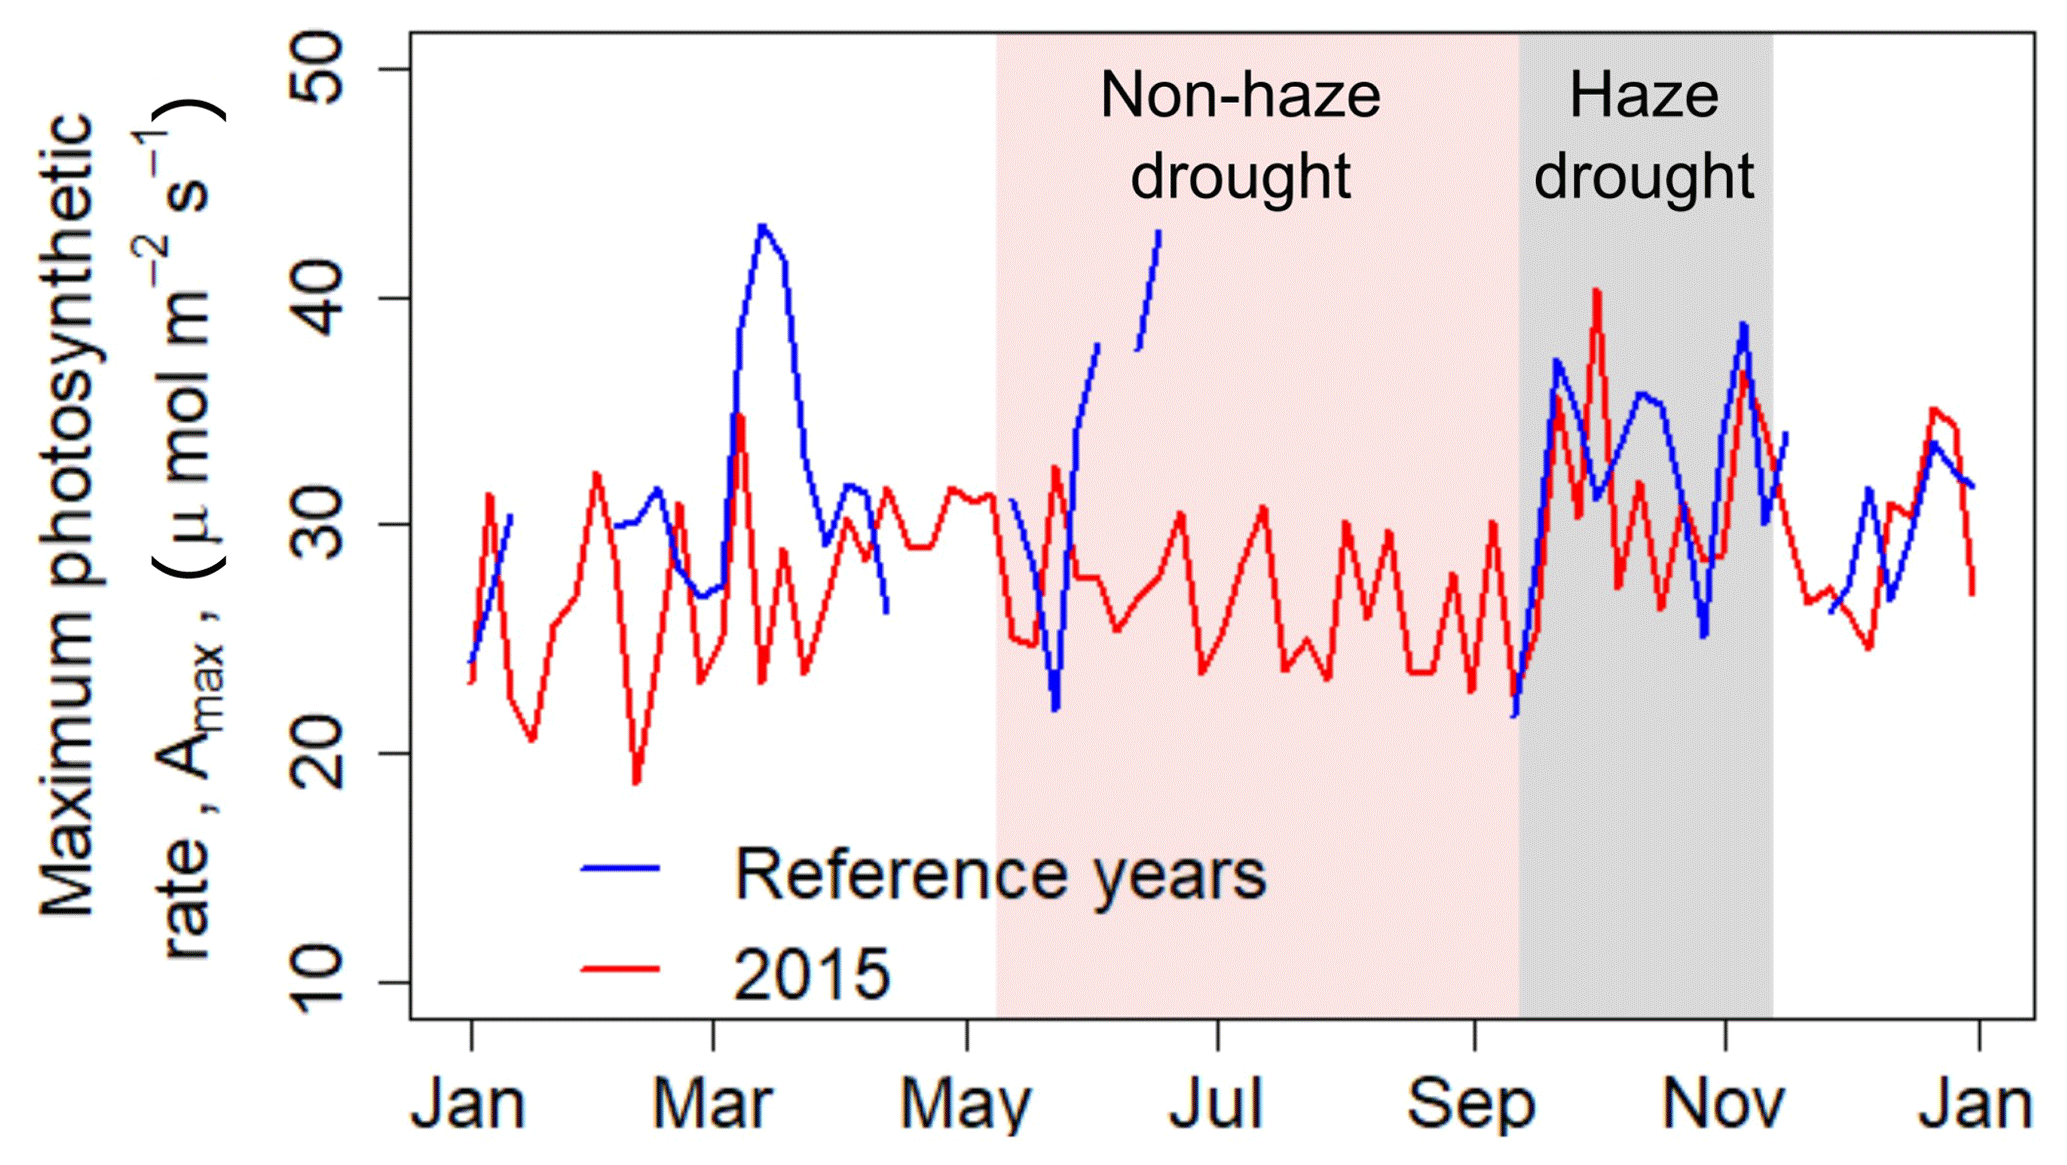 BG - El Niño–Southern Oscillation (ENSO) event reduces CO2 uptake of